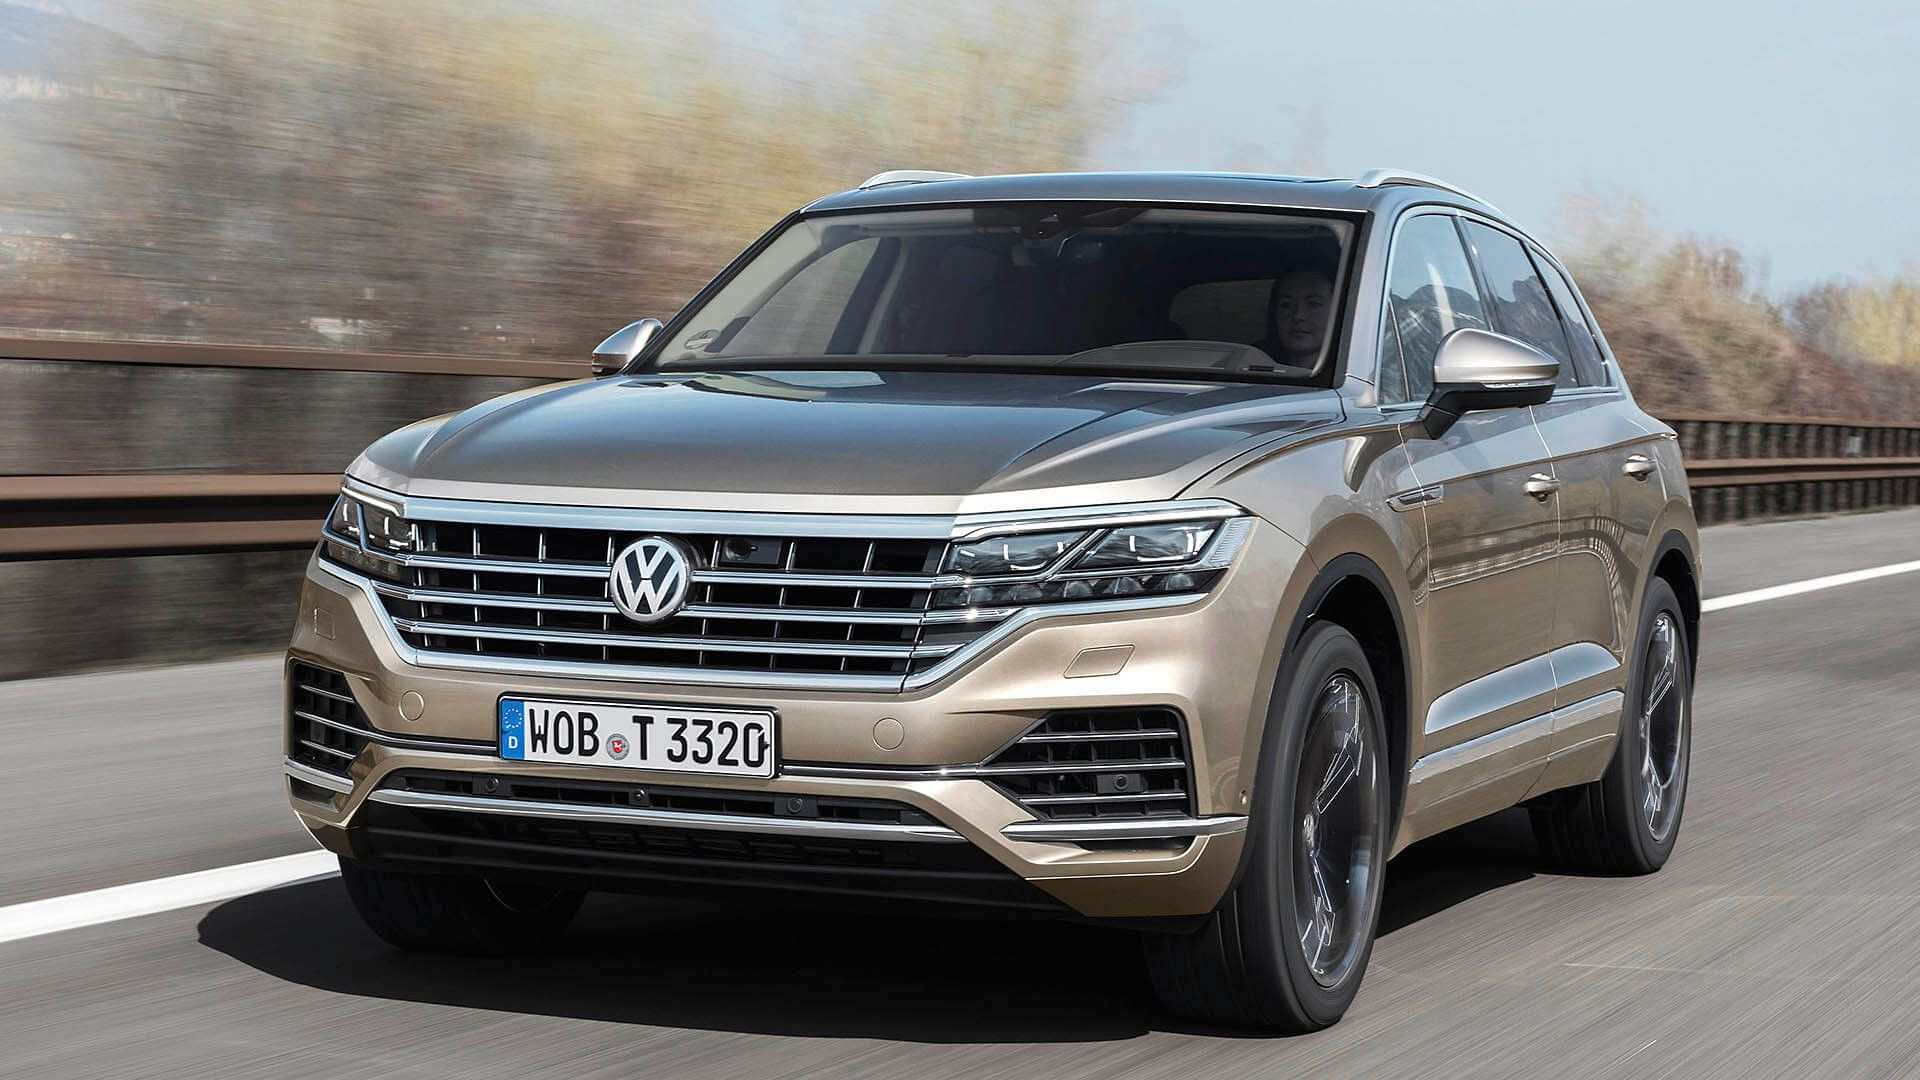 30 Concept of Volkswagen 2020 Touareg Exterior New Concept by Volkswagen 2020 Touareg Exterior